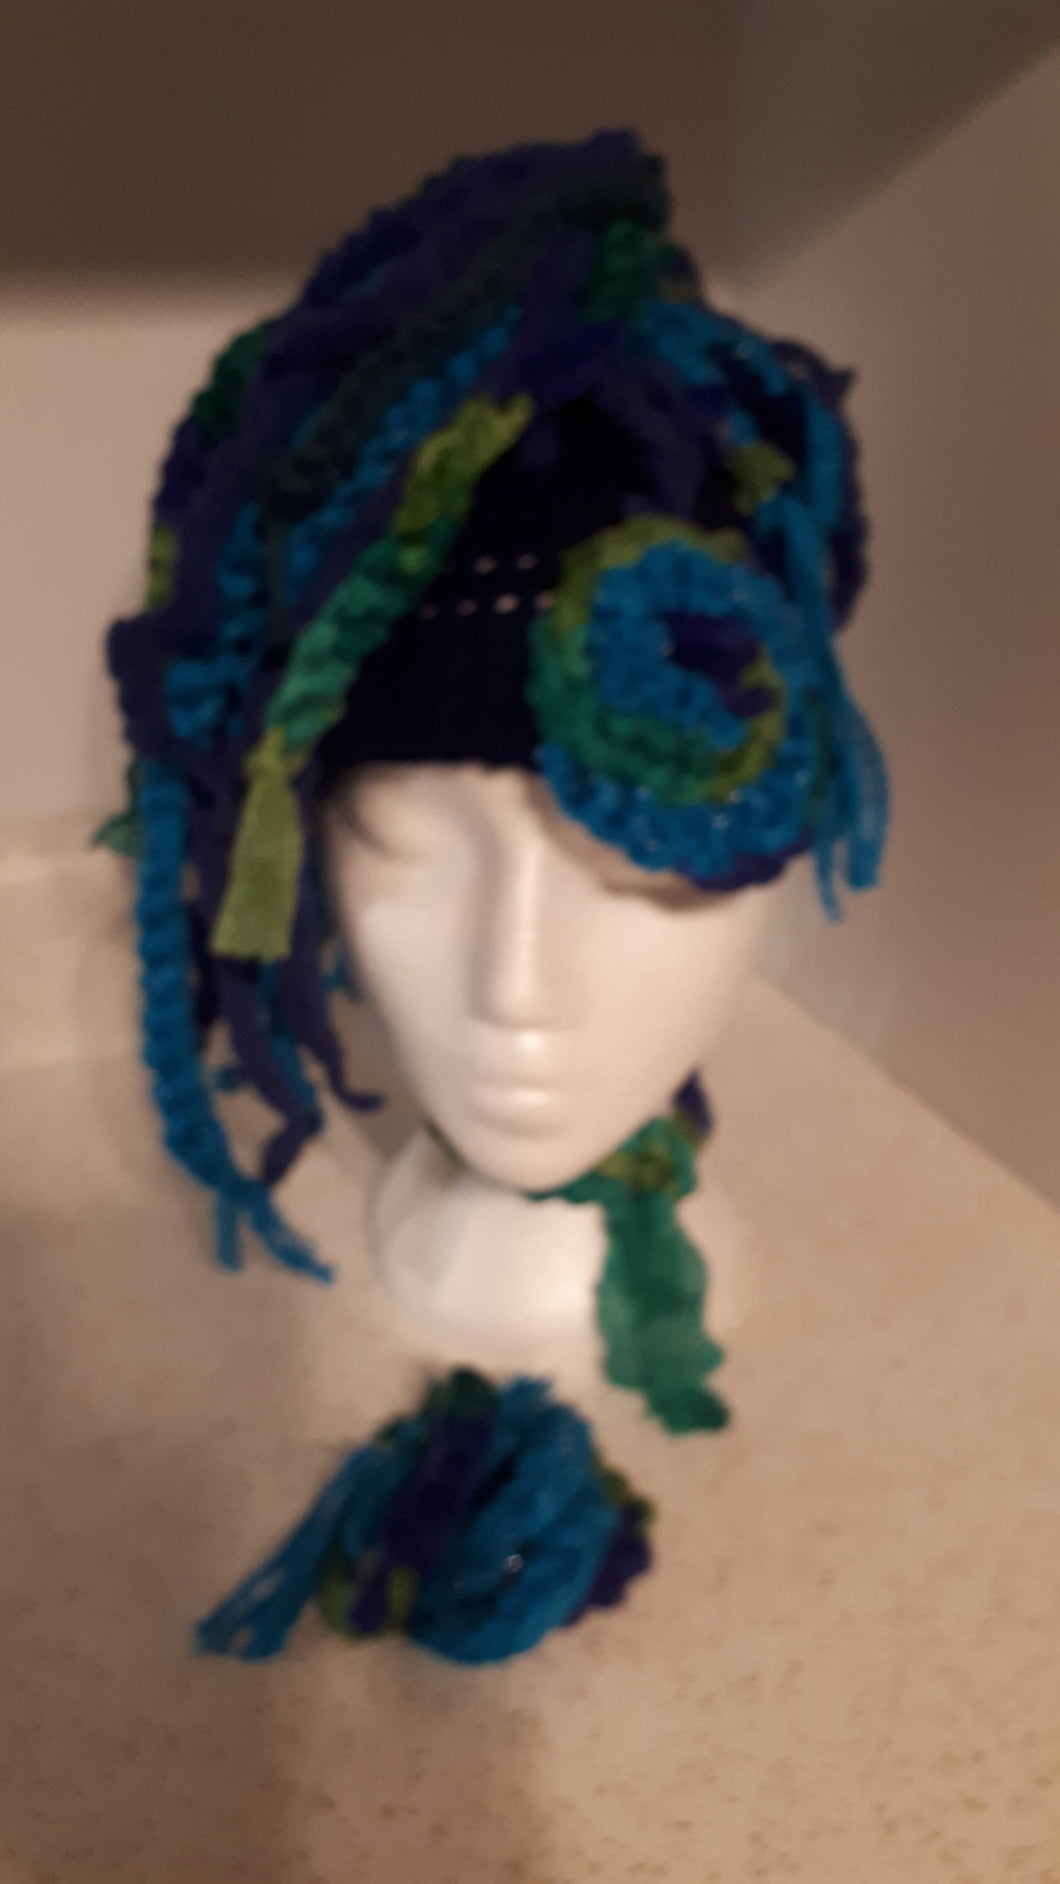 Peacock Patch Dread Hat Up or Down, Bracelet and Choker